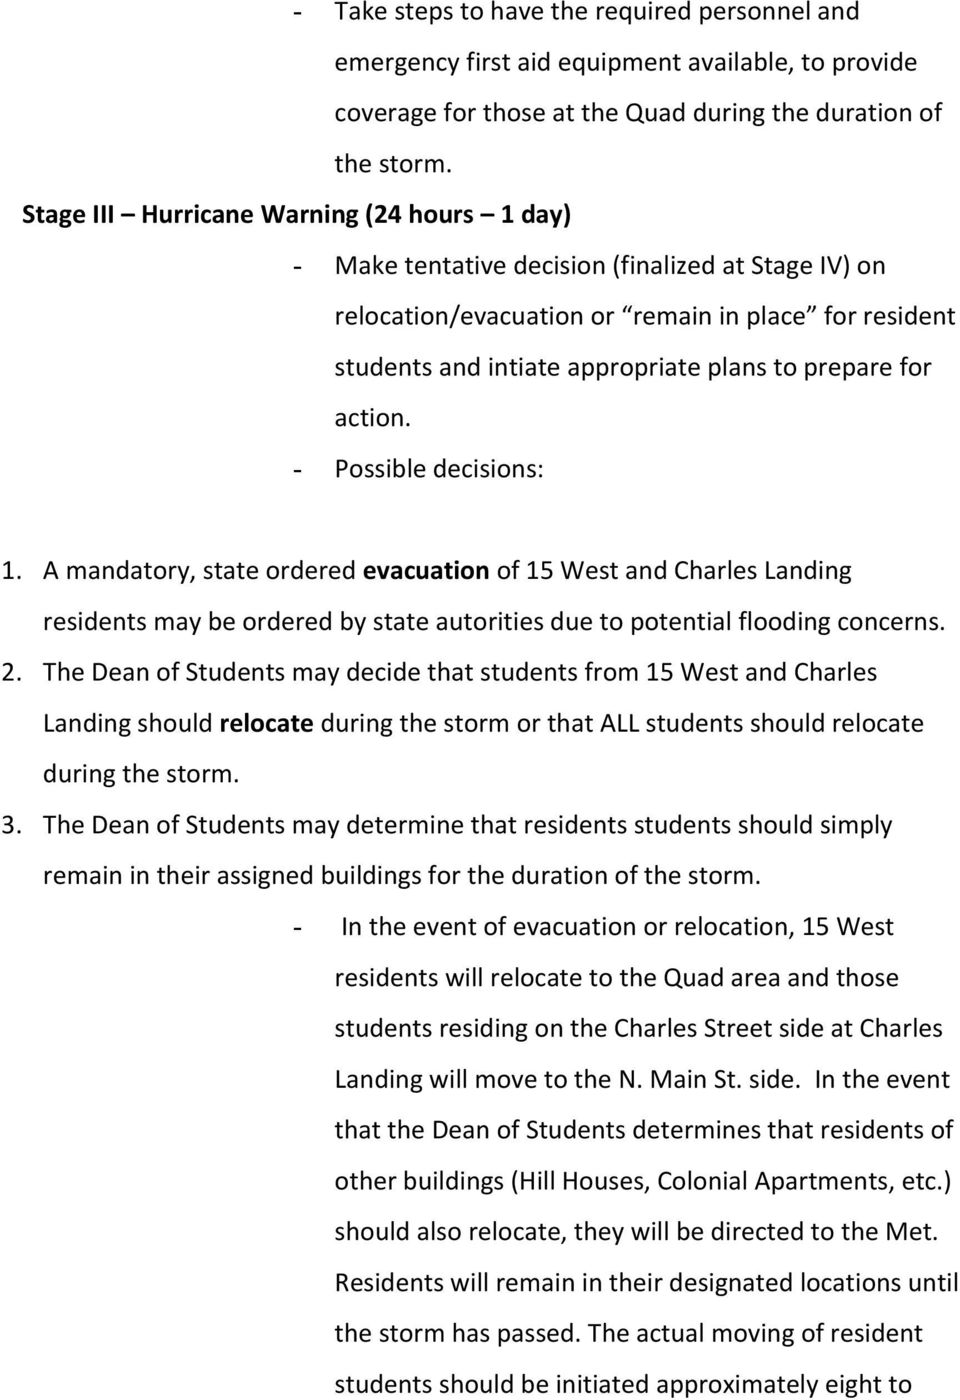 prepare for action. - Possible decisions: 1. A mandatory, state ordered evacuation of 15 West and Charles Landing residents may be ordered by state autorities due to potential flooding concerns. 2.